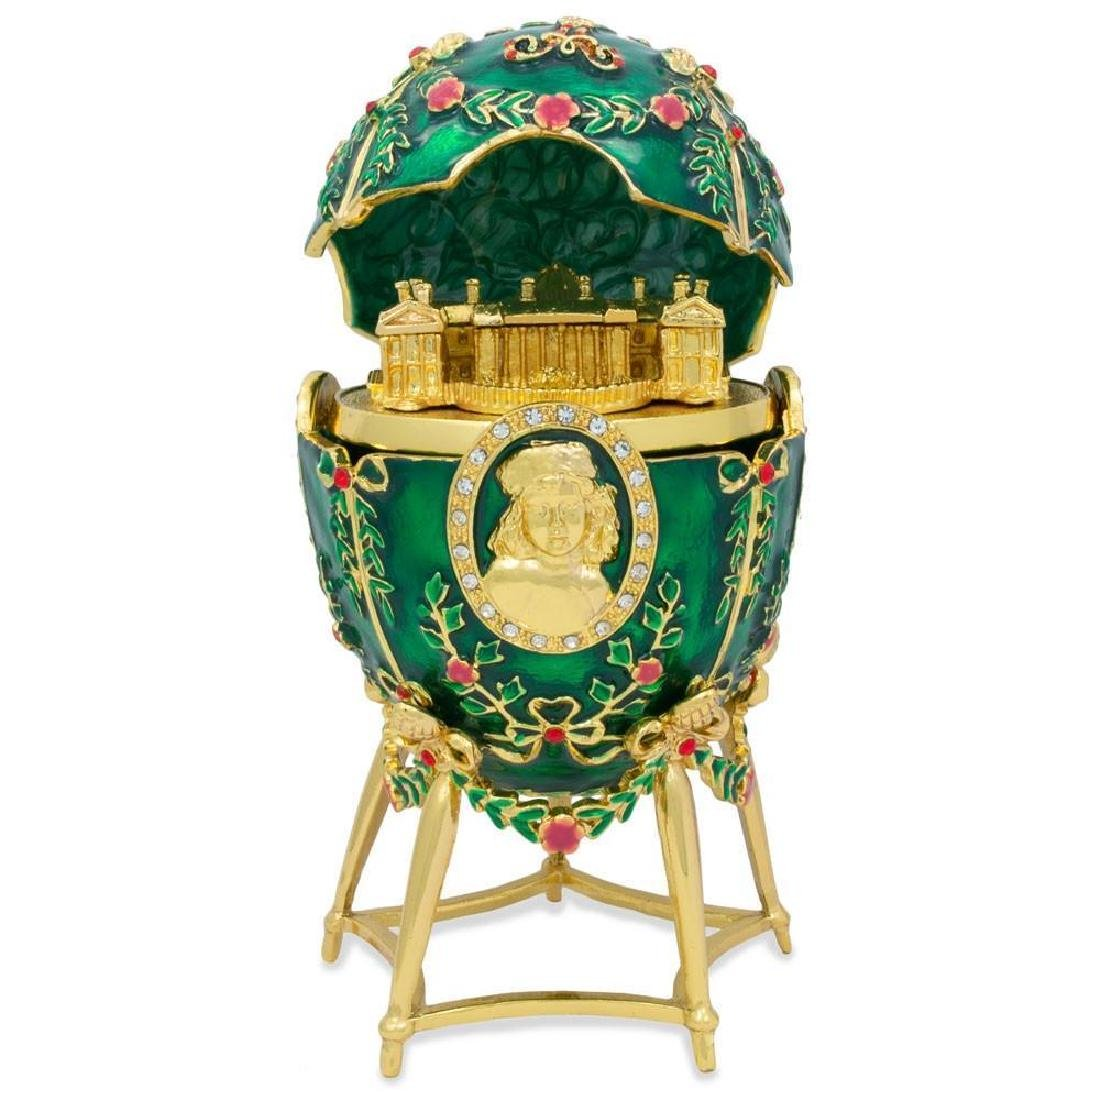 Faberge Inspired 1908 Alexander Palace Faberge Egg